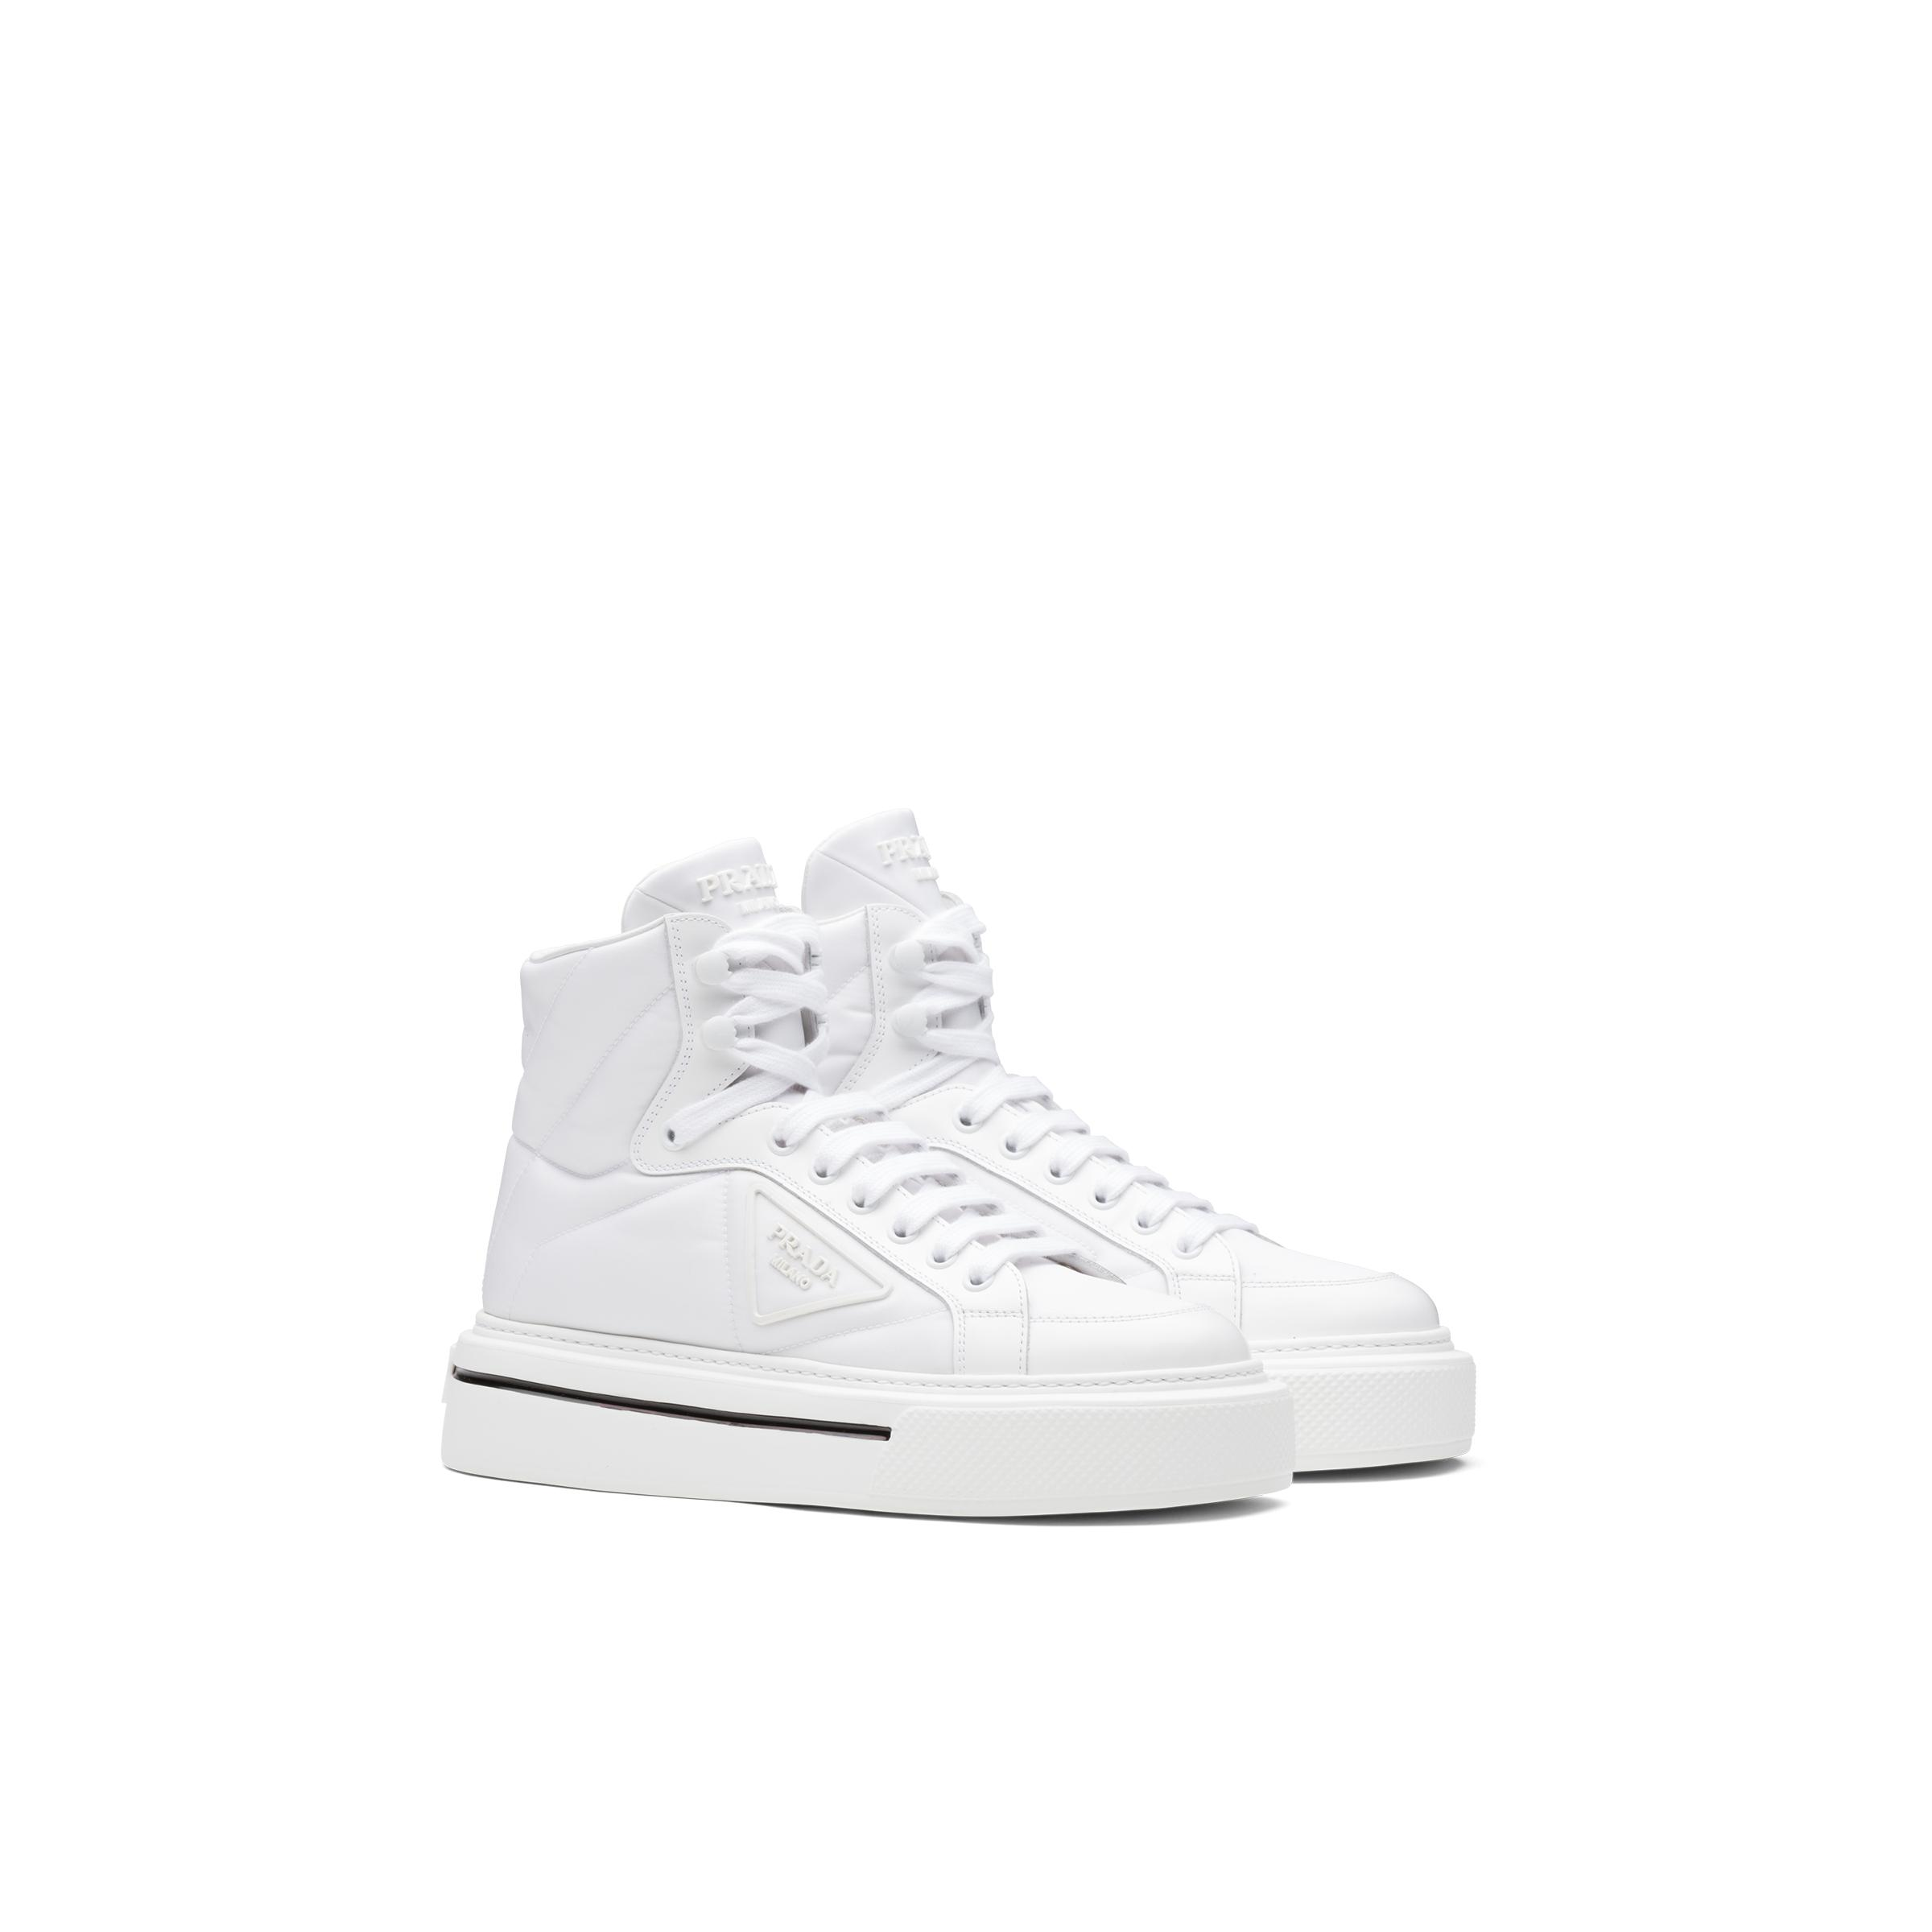 Macro Re-nylon And Brushed Leather High-top Sneakers Women White